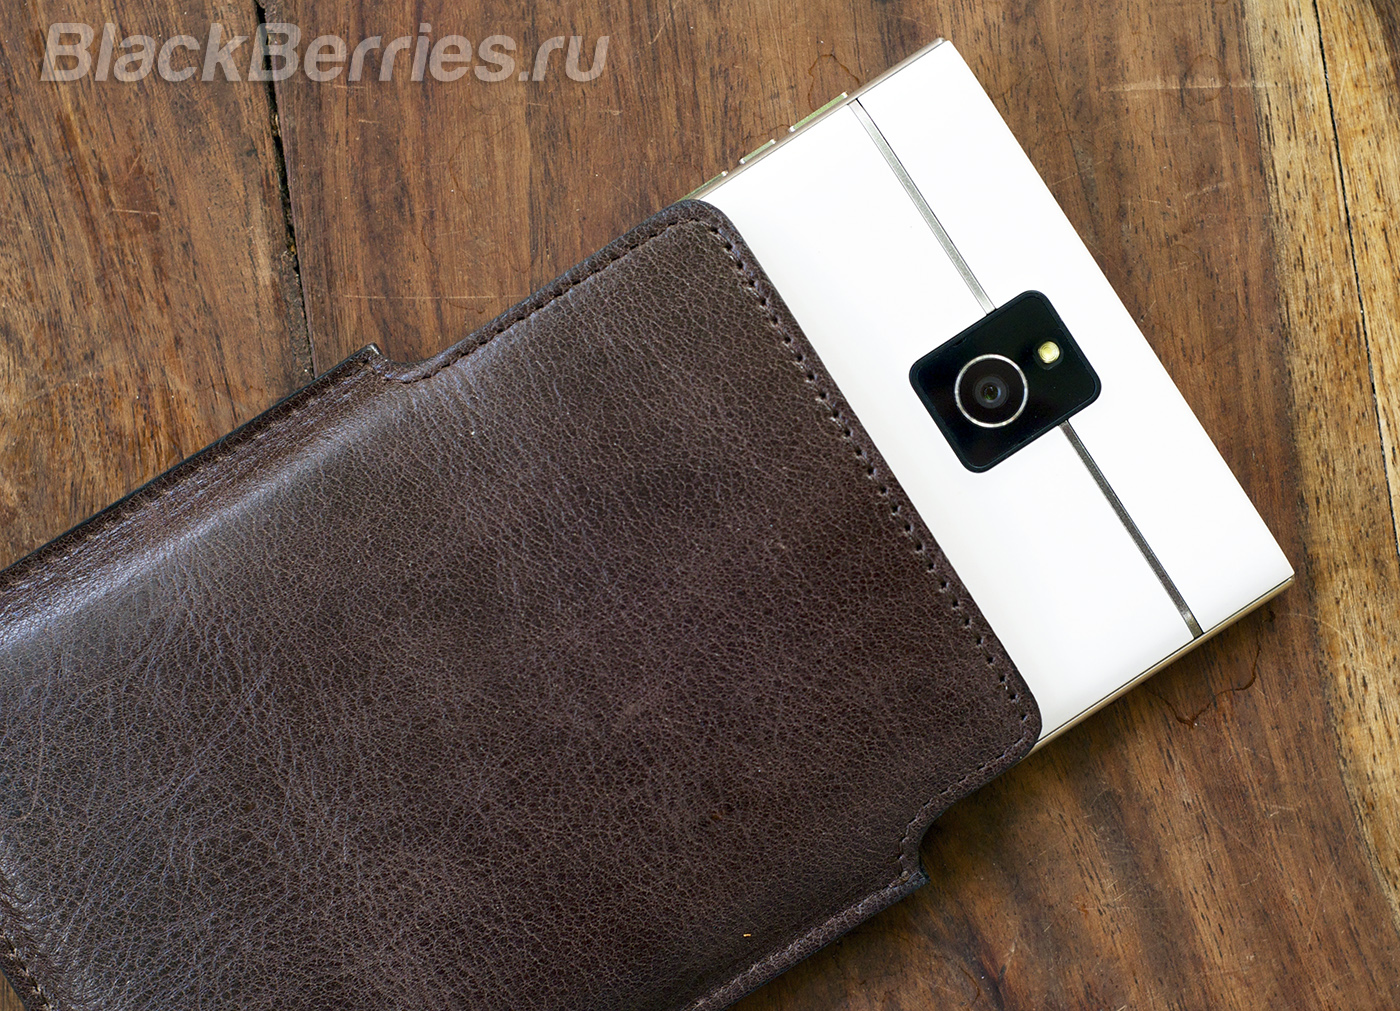 BlackBerry-Passport-Case-10